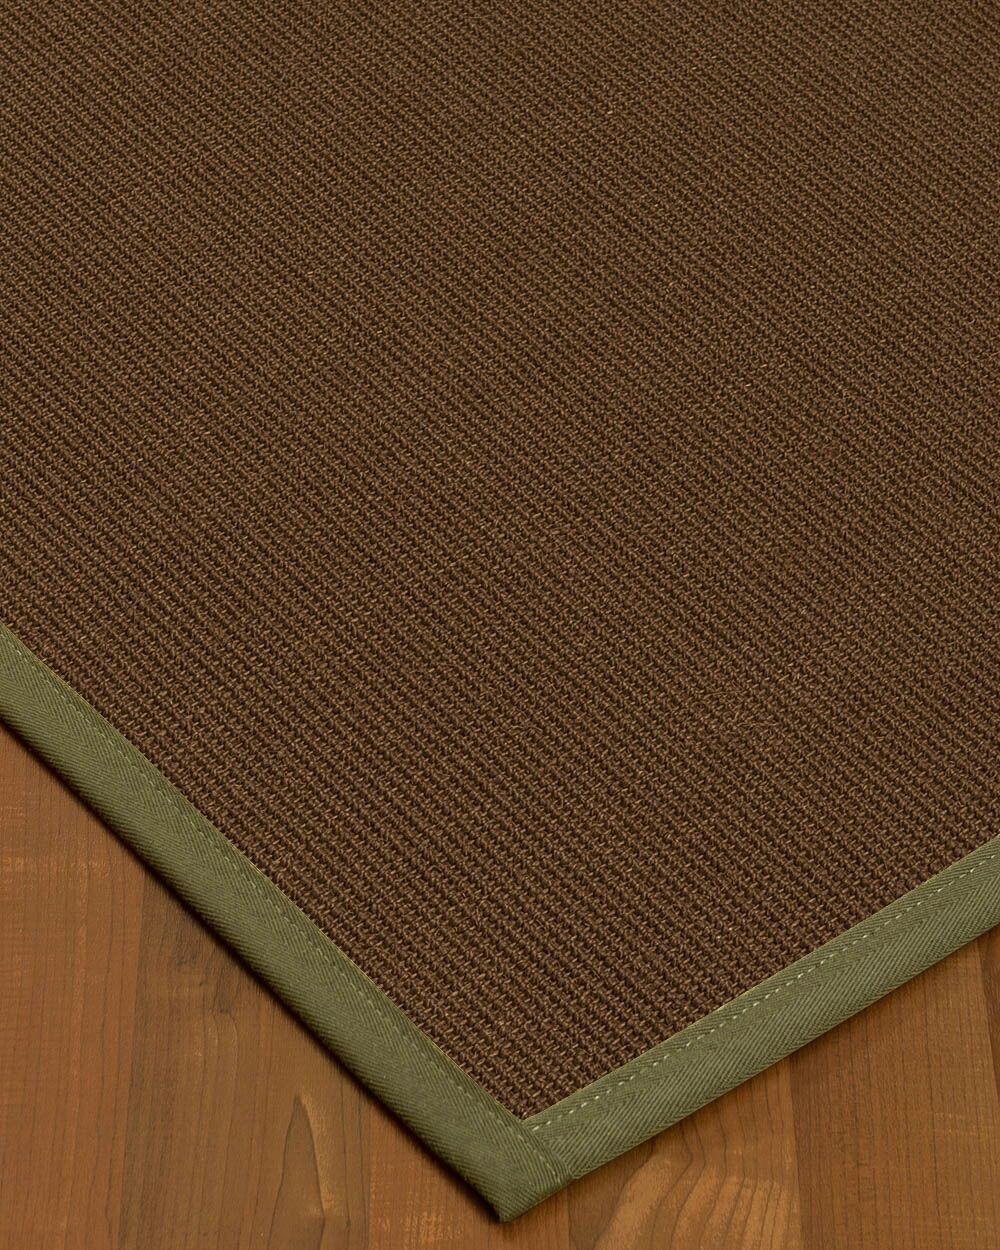 Heider Border Hand-Woven Brown/Fossil Area Rug Rug Pad Included: No, Rug Size: Runner 2'6